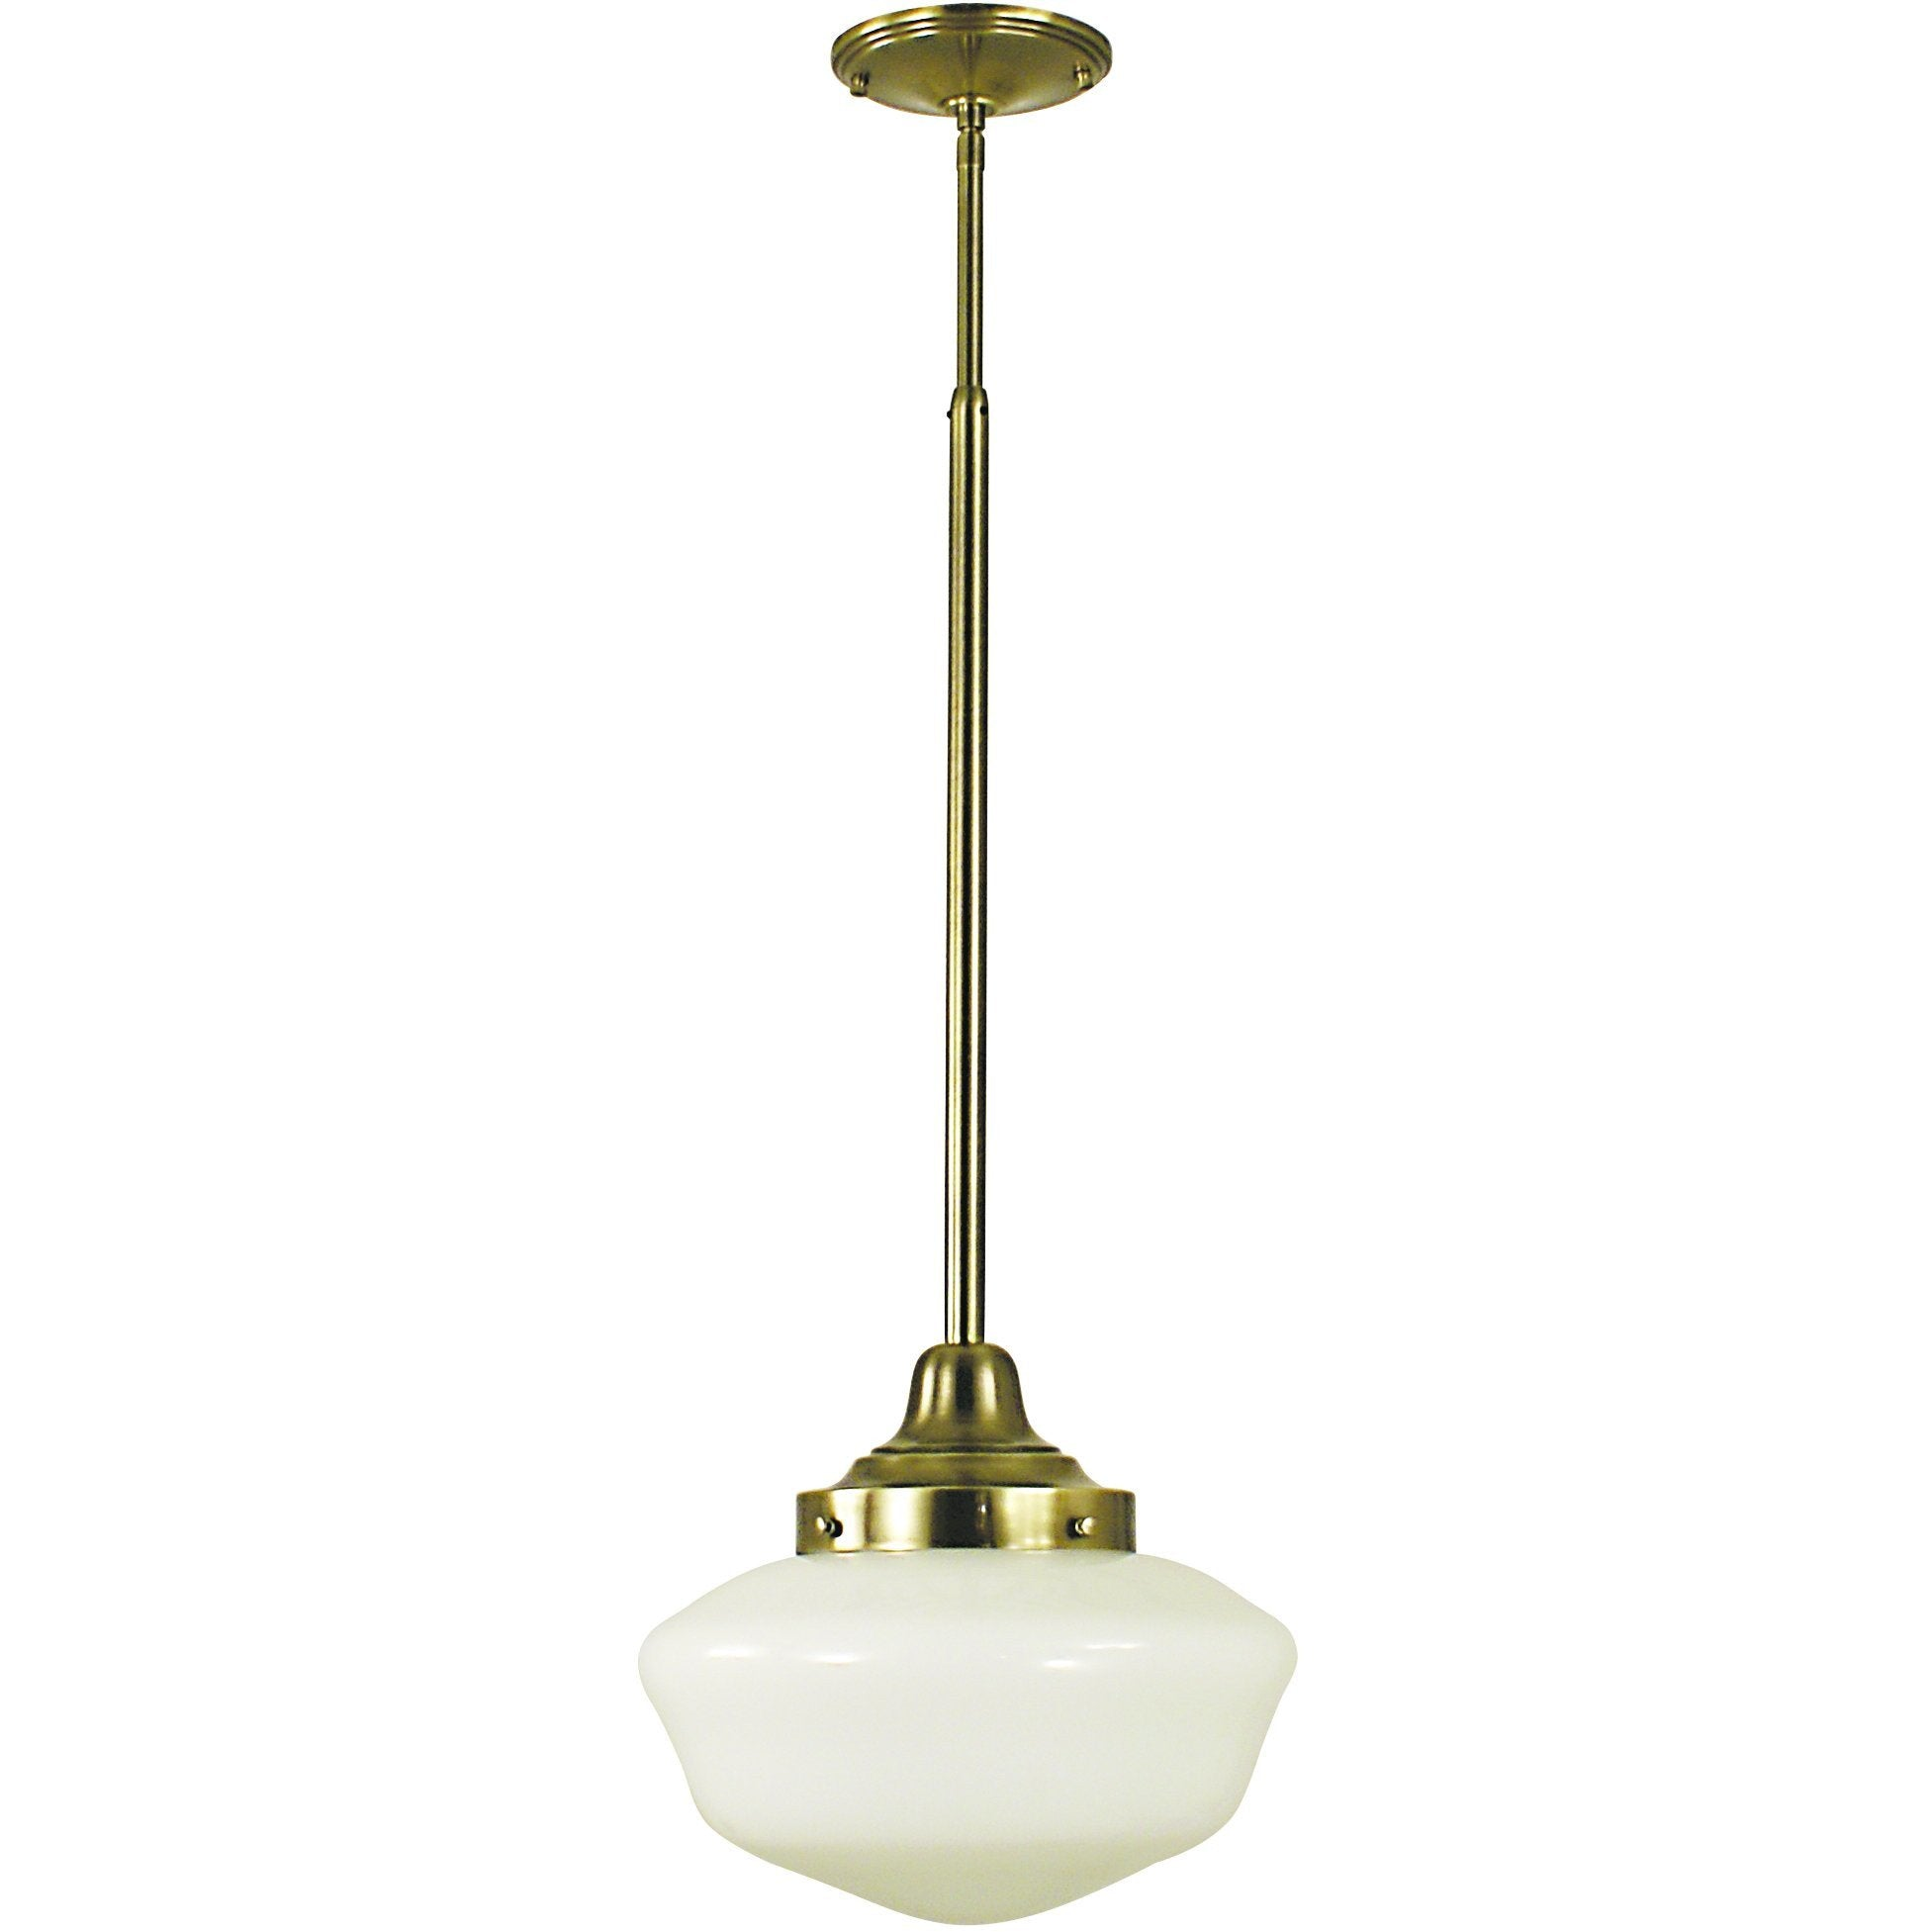 Framburg Pendants Antique Brass 1-Light Antique Brass Taylor Pendant by Framburg 2556